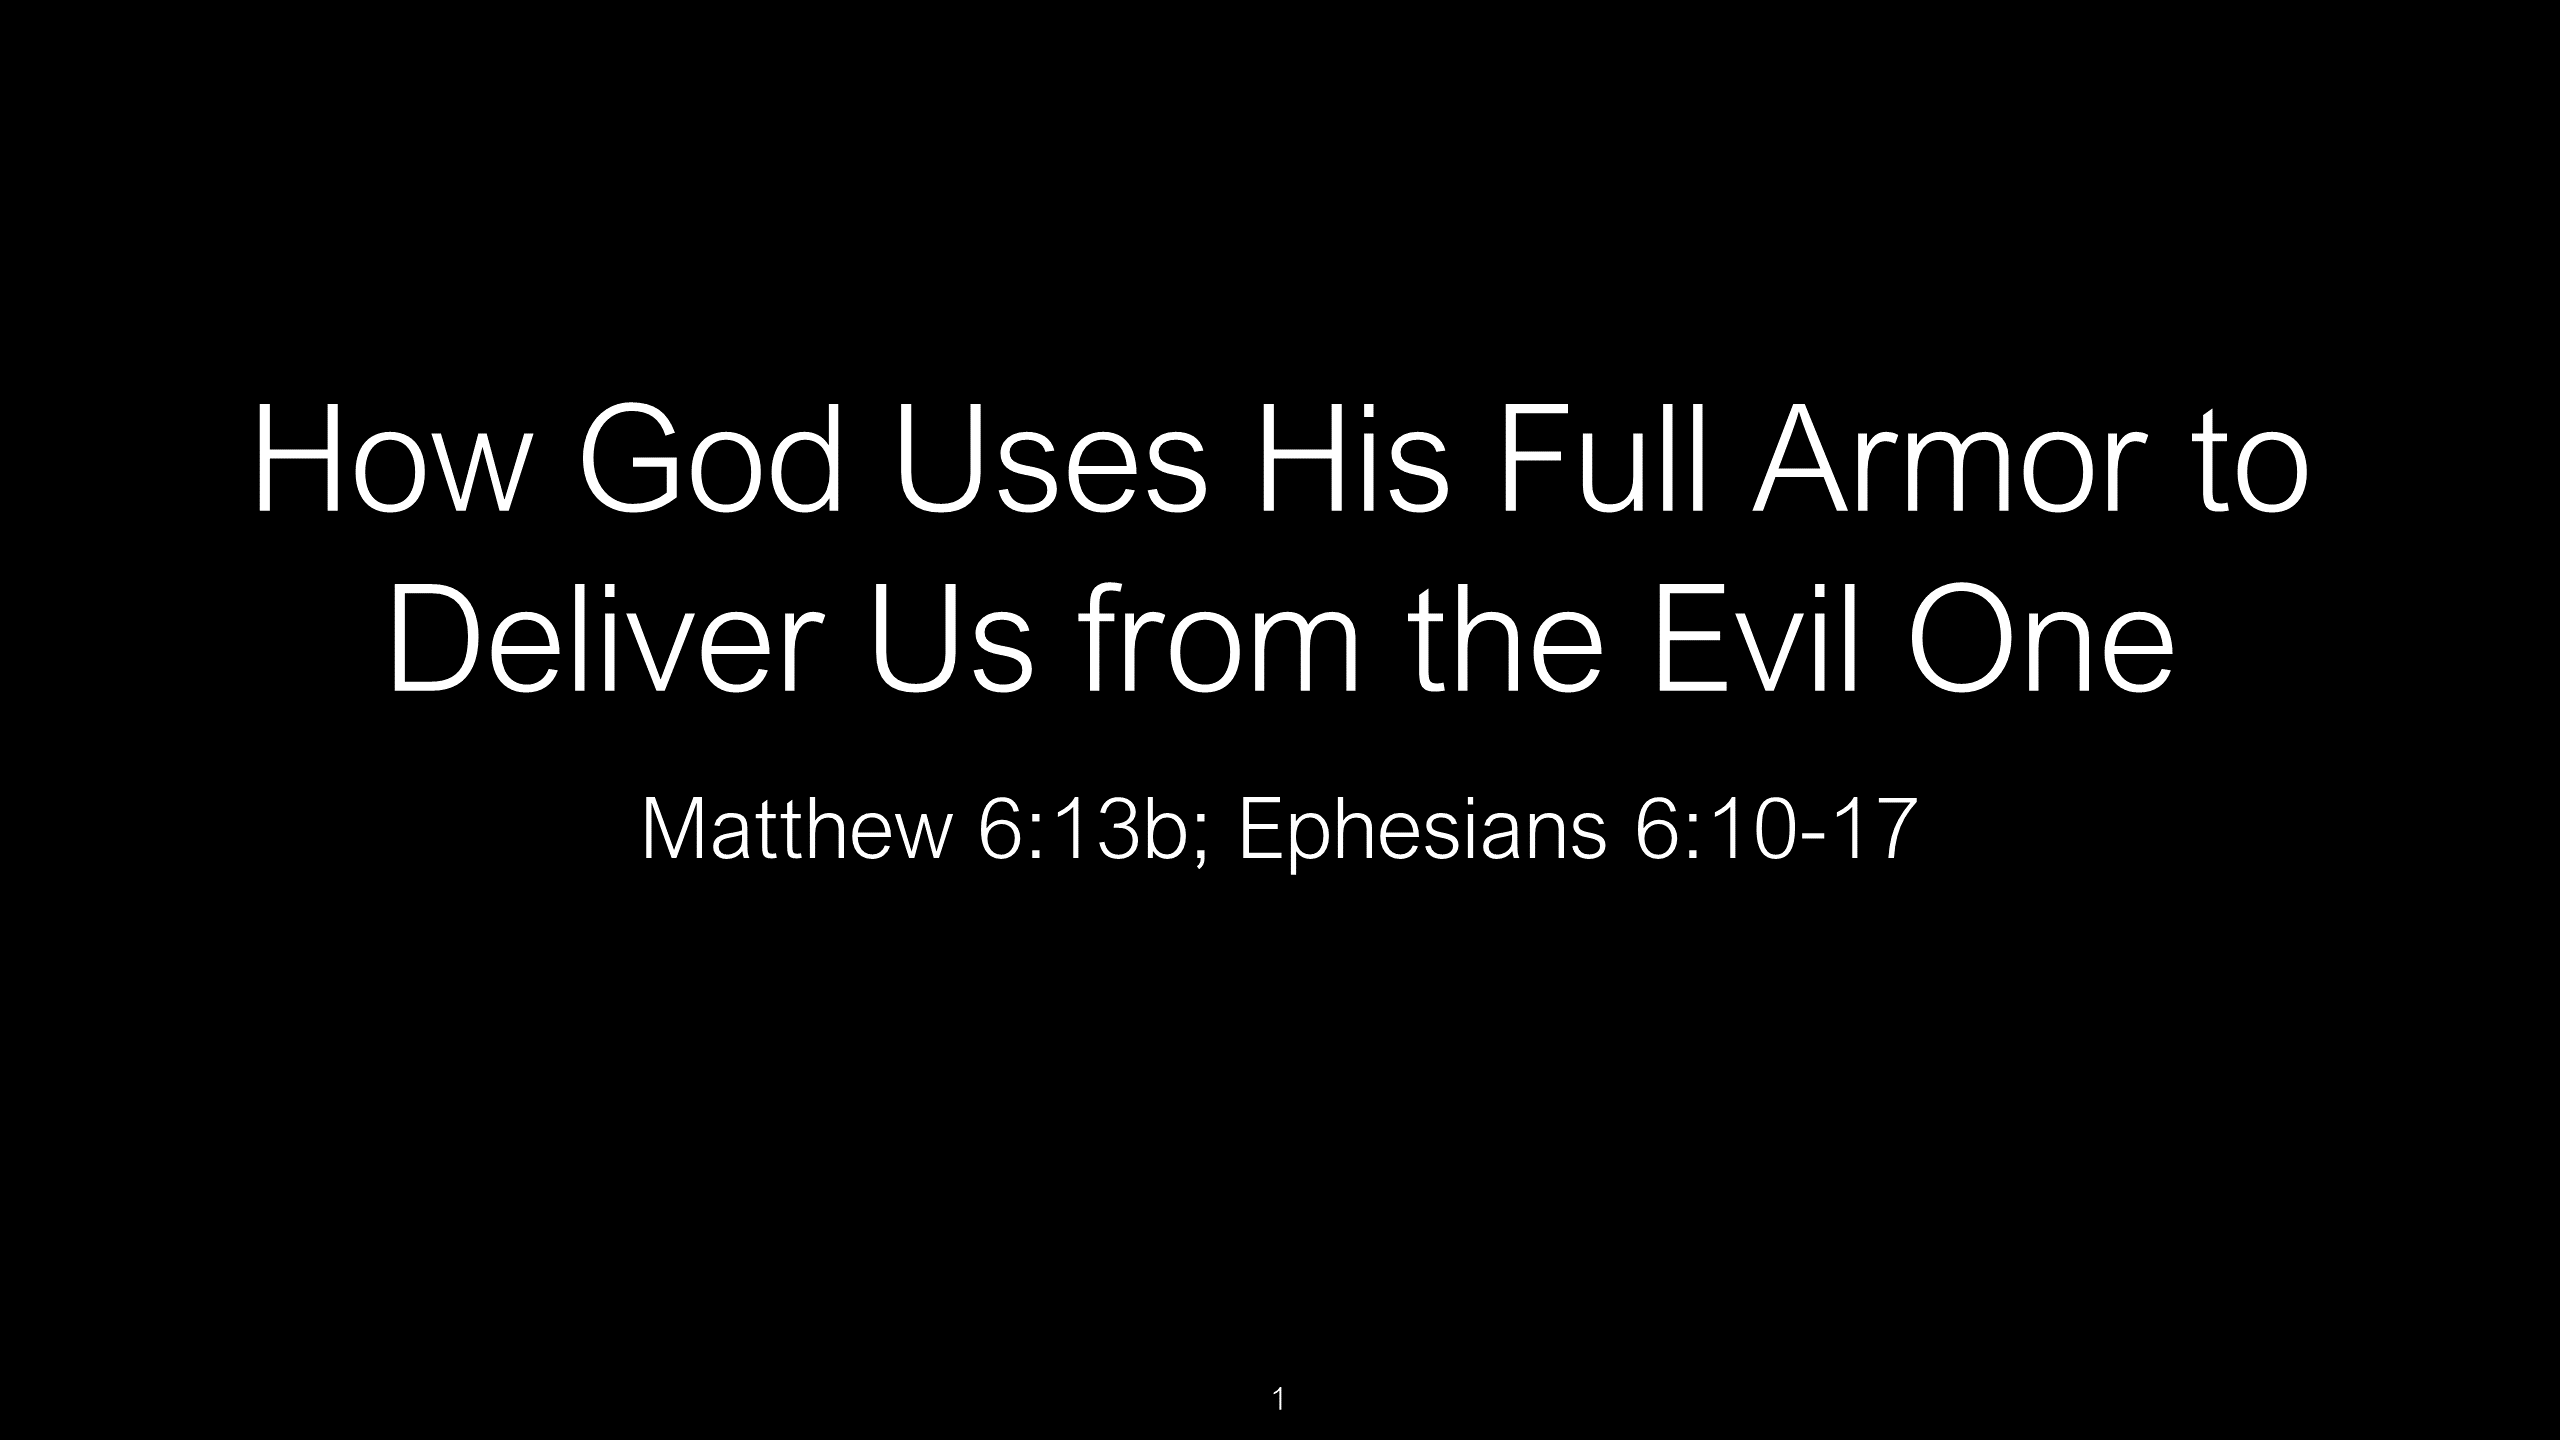 SWS-16 - How God Uses the Full Armor of God to Deliver Us from the Evil One (1)